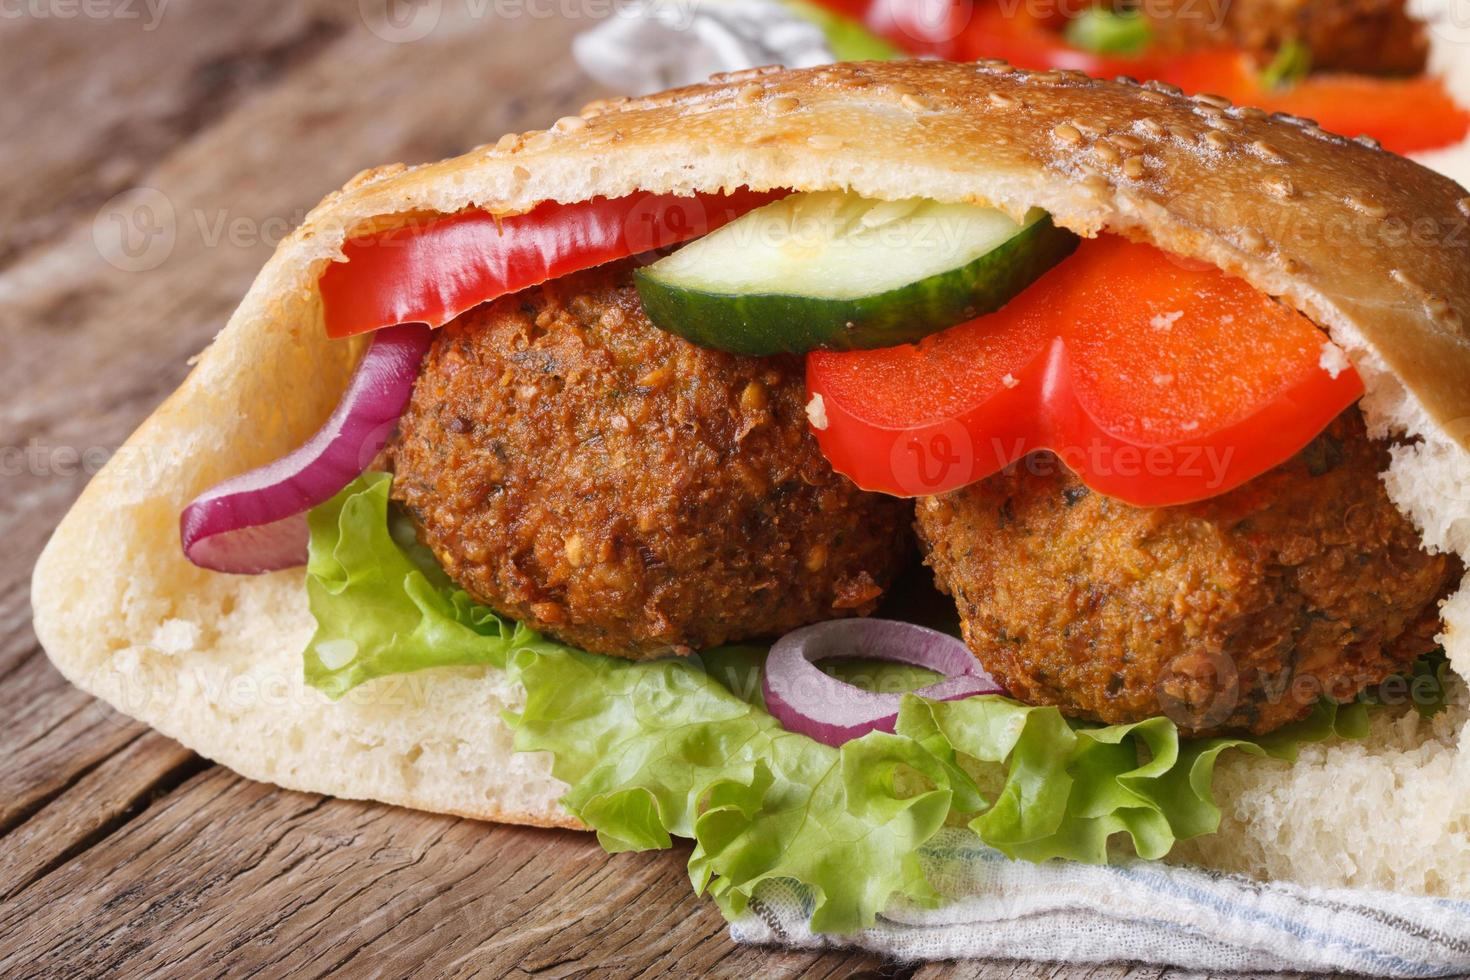 falafel with fresh vegetables in pita bread close-up photo